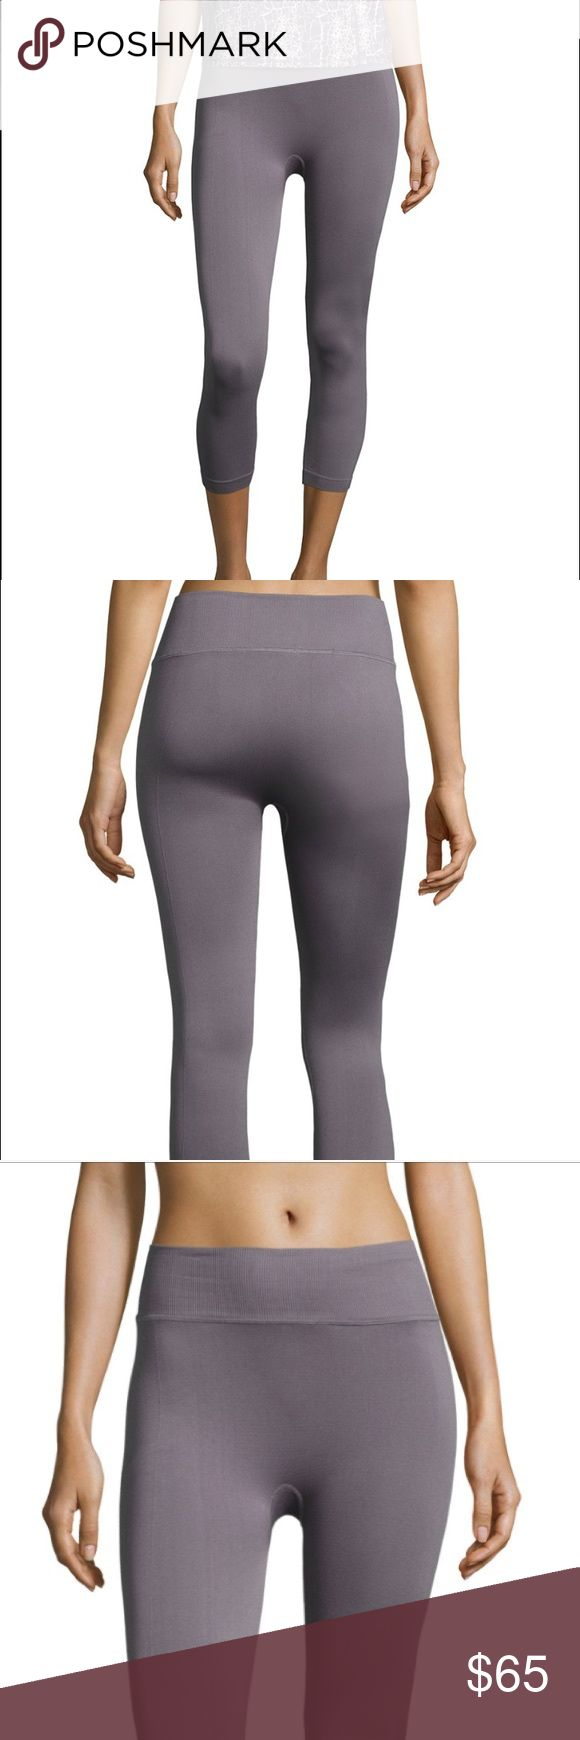 Yummie Tummie Yoga Capris Shark color yogas from Yummie Tummie designer at Neiman Marcus . New with tags! Size M/L Yummie Tummie Pants Leggings